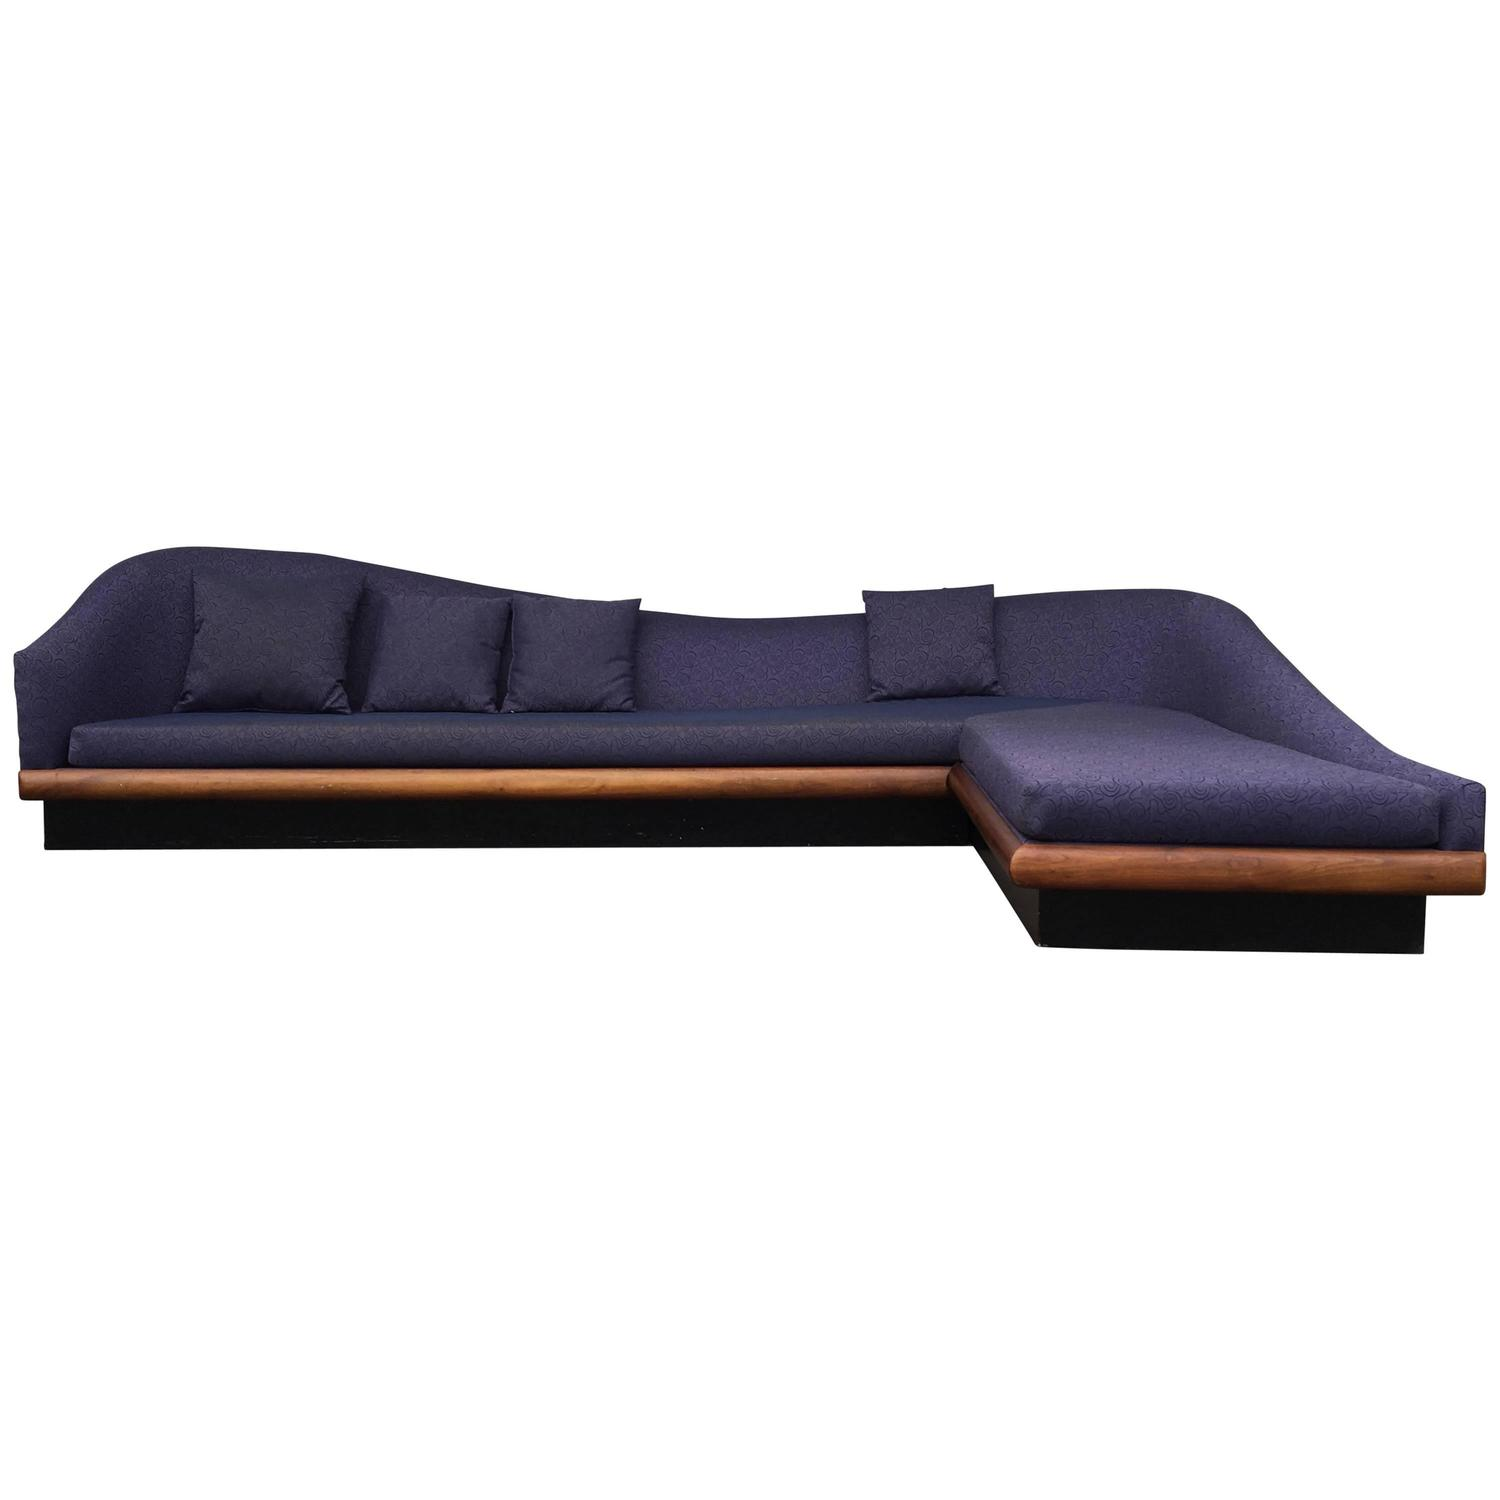 Cloud sofa price floating cloud couches sofa price for Magnetic floating couch